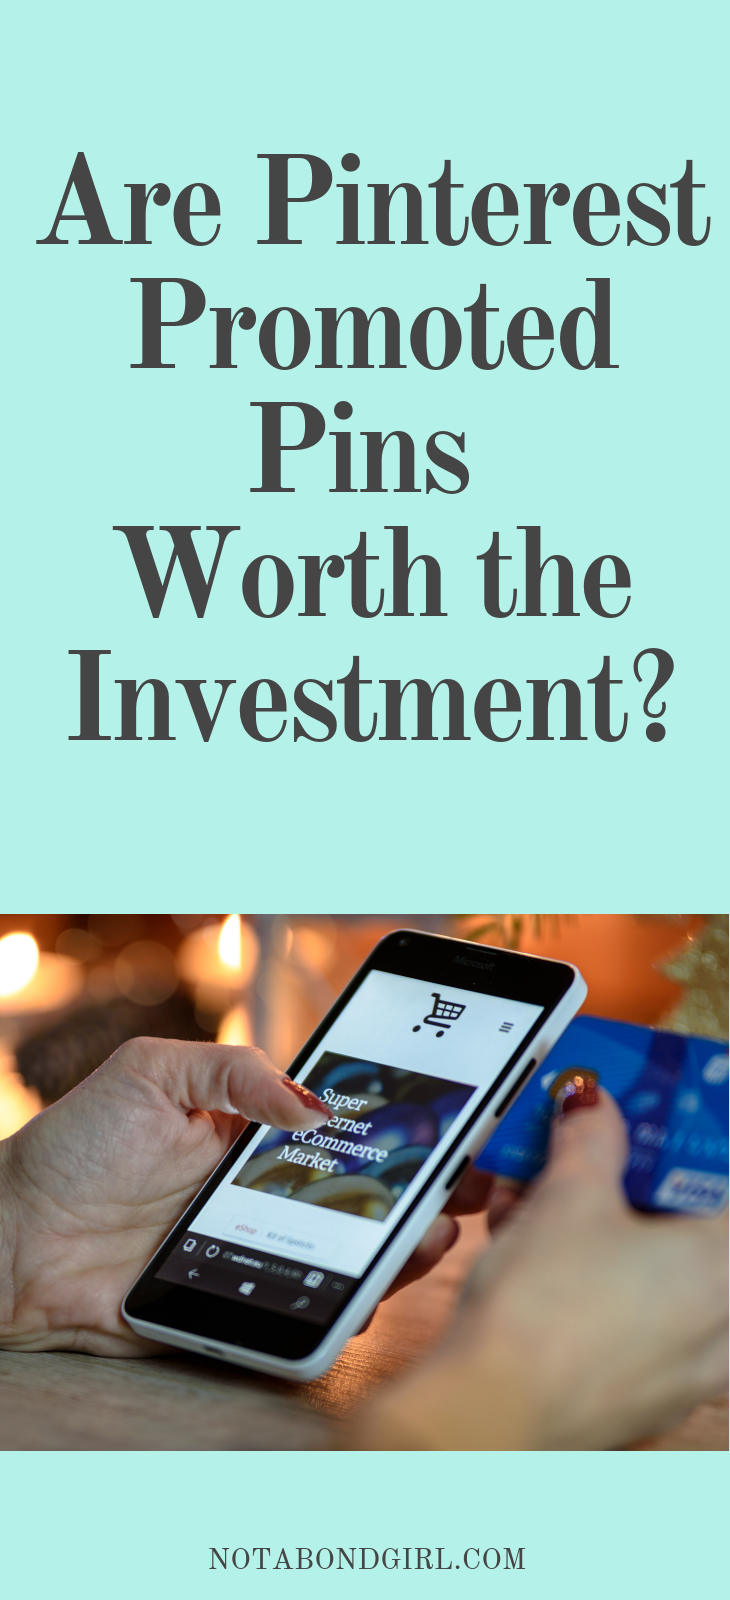 Pinterest Promoted Pins: Is It Worth Spending Your Money?